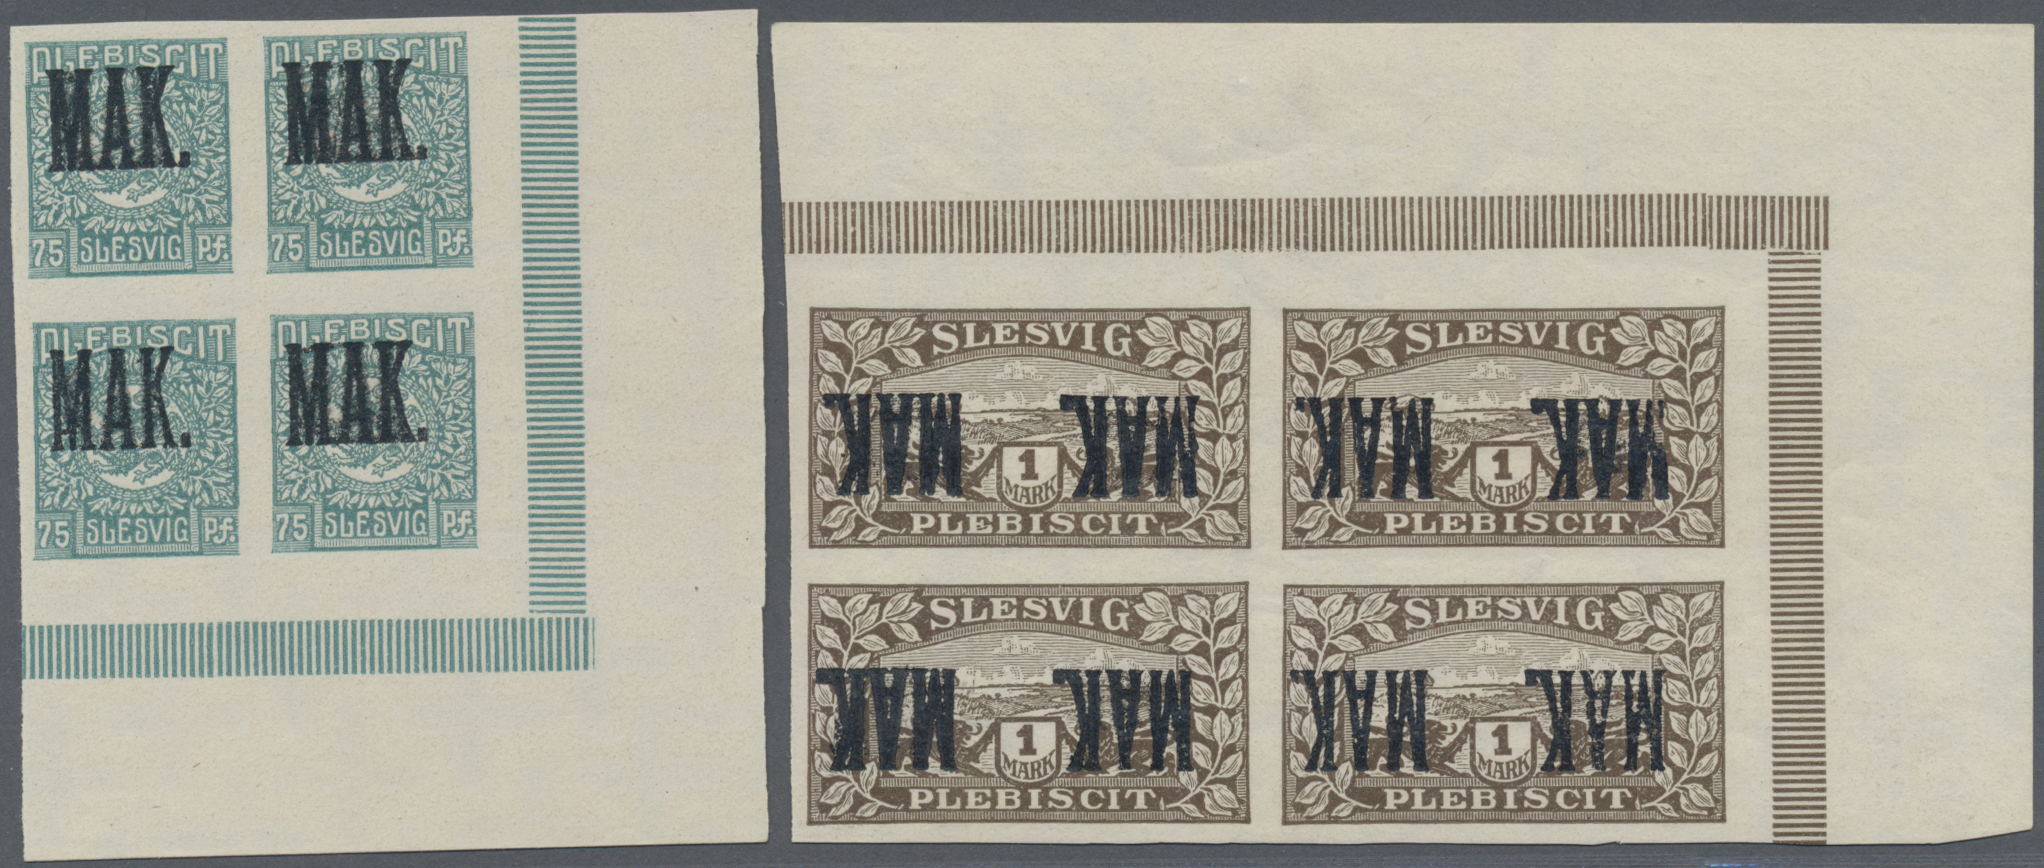 Lot 11587 - Deutsche Abstimmungsgebiete: Schleswig  -  Auktionshaus Christoph Gärtner GmbH & Co. KG Sale #48 The Single Lots Philatelie